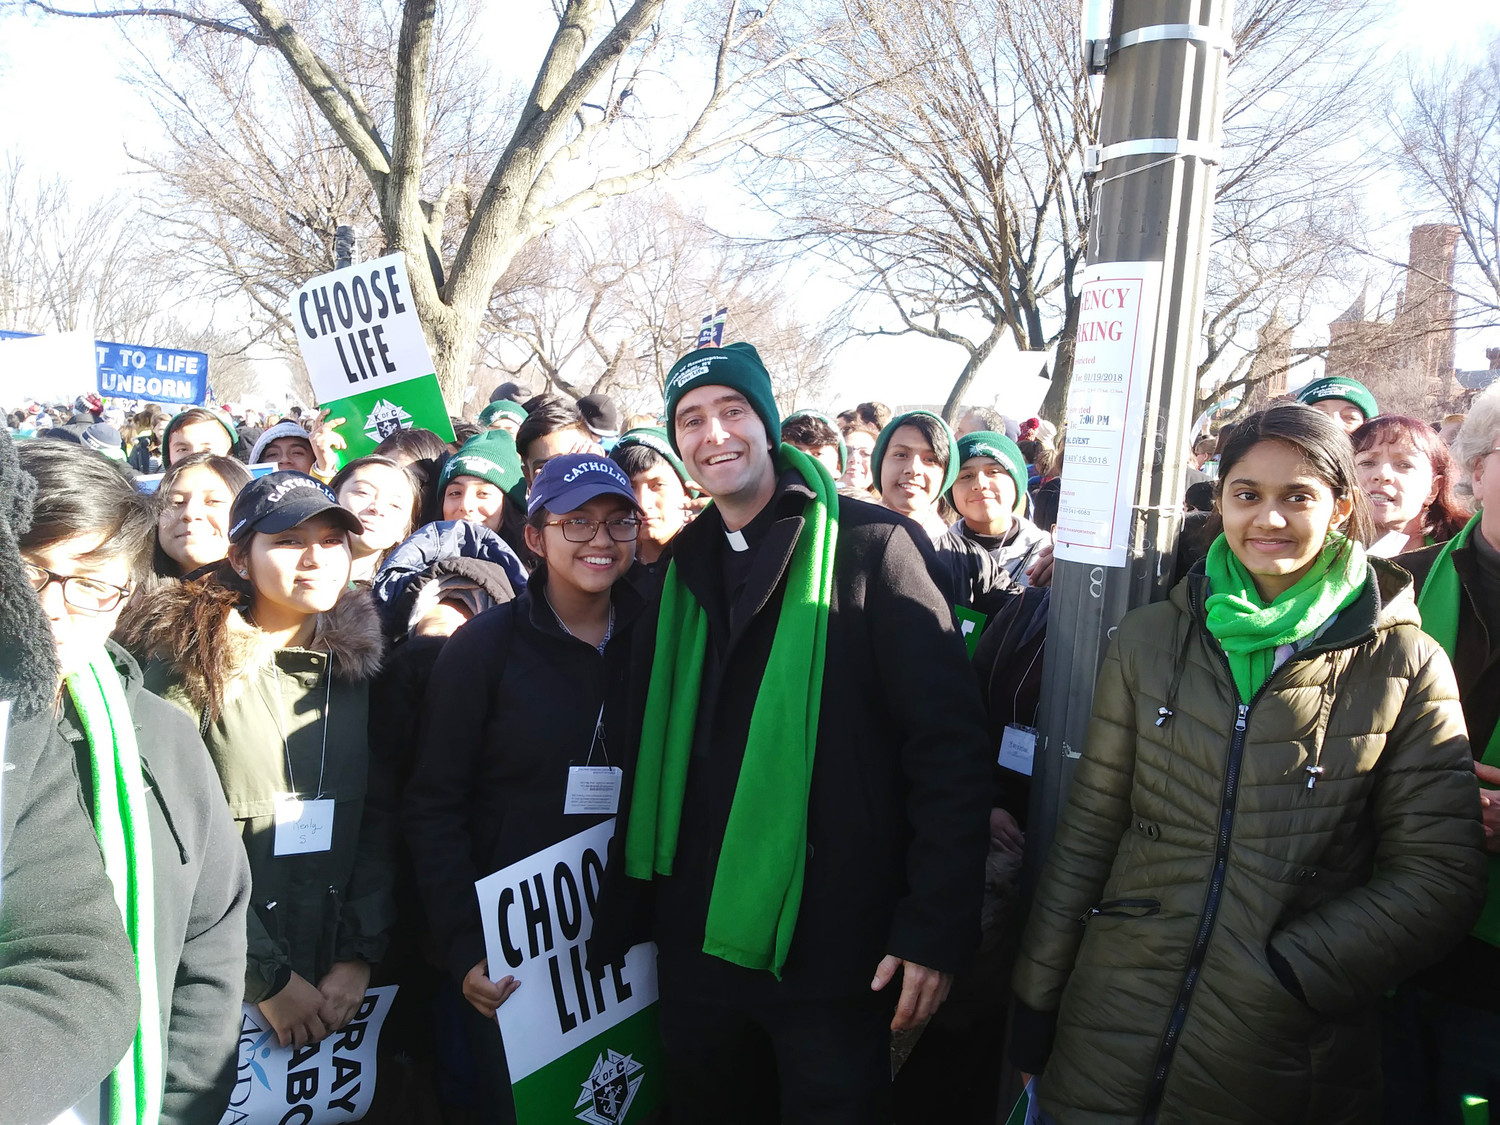 Father Vincent Druding, parochial vicar at Assumption parish in Peekskill, stands with parish teens and adults at the National Mall before beginning the March for Life. The parish sent a busload of 45 teens and chaperones the night before to participate in a youth rally, and a second bus with 30 people left Peekskill the morning of the rally and march.